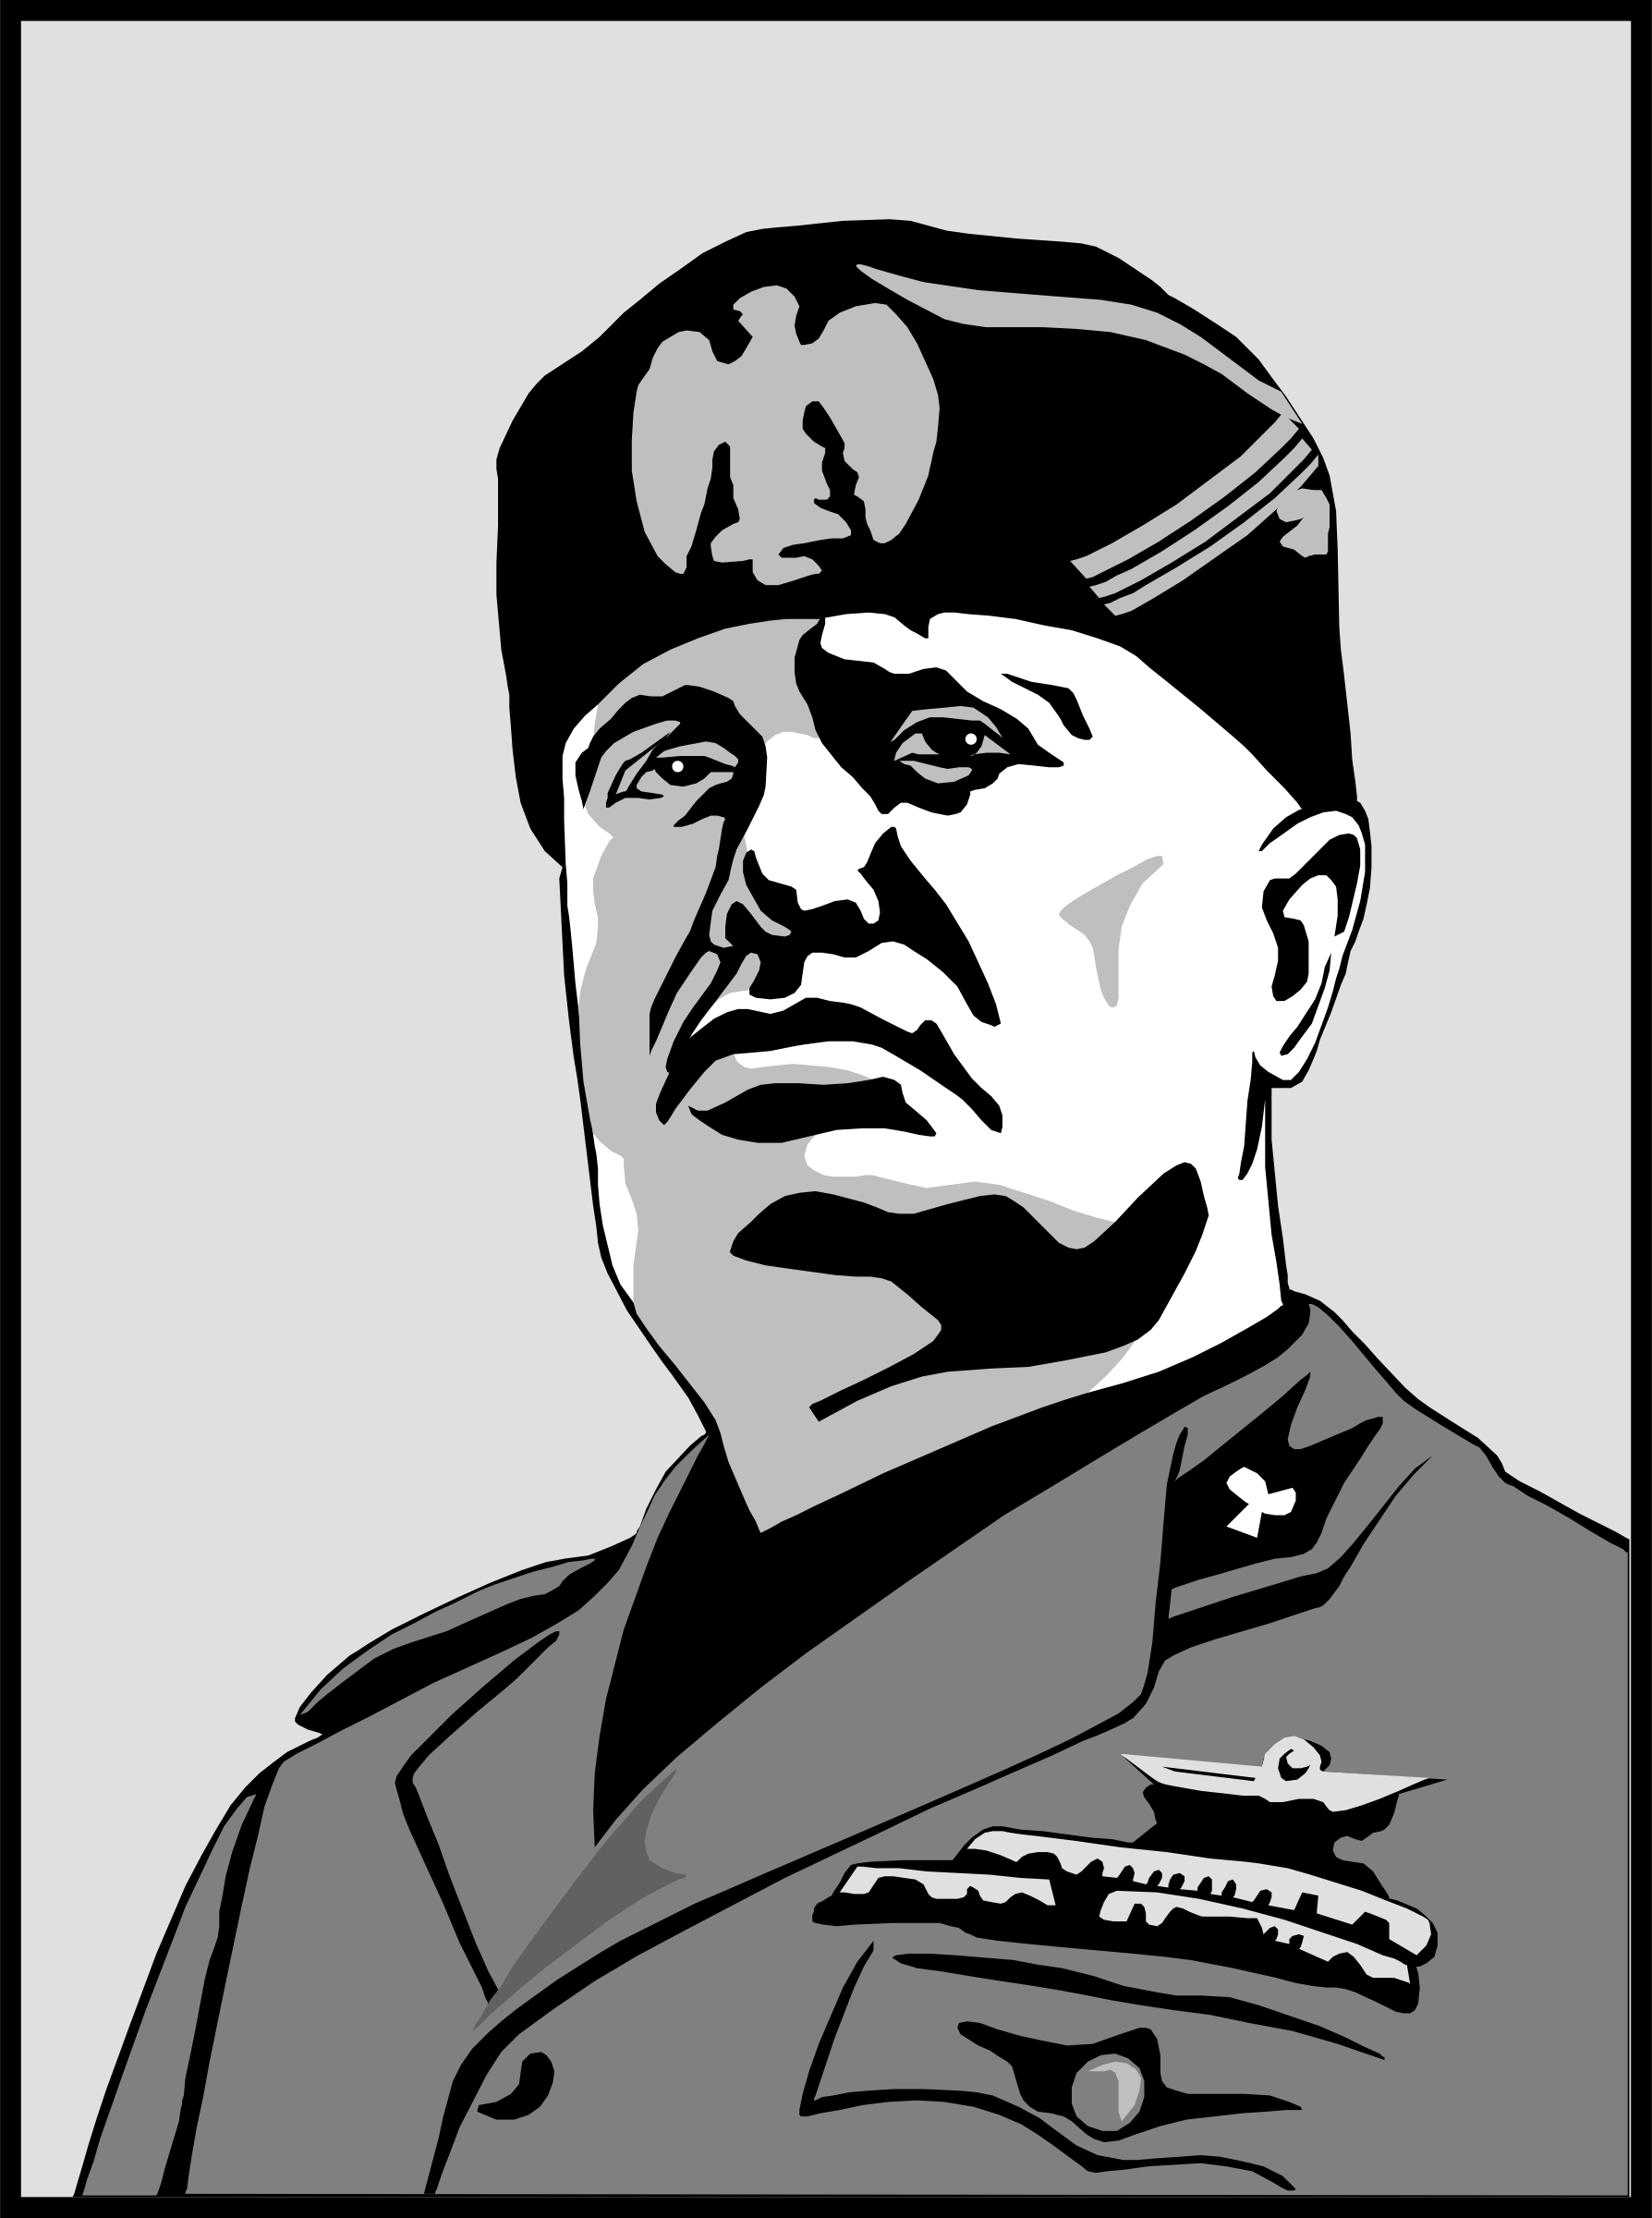 benito mussolini by cactus cowboy